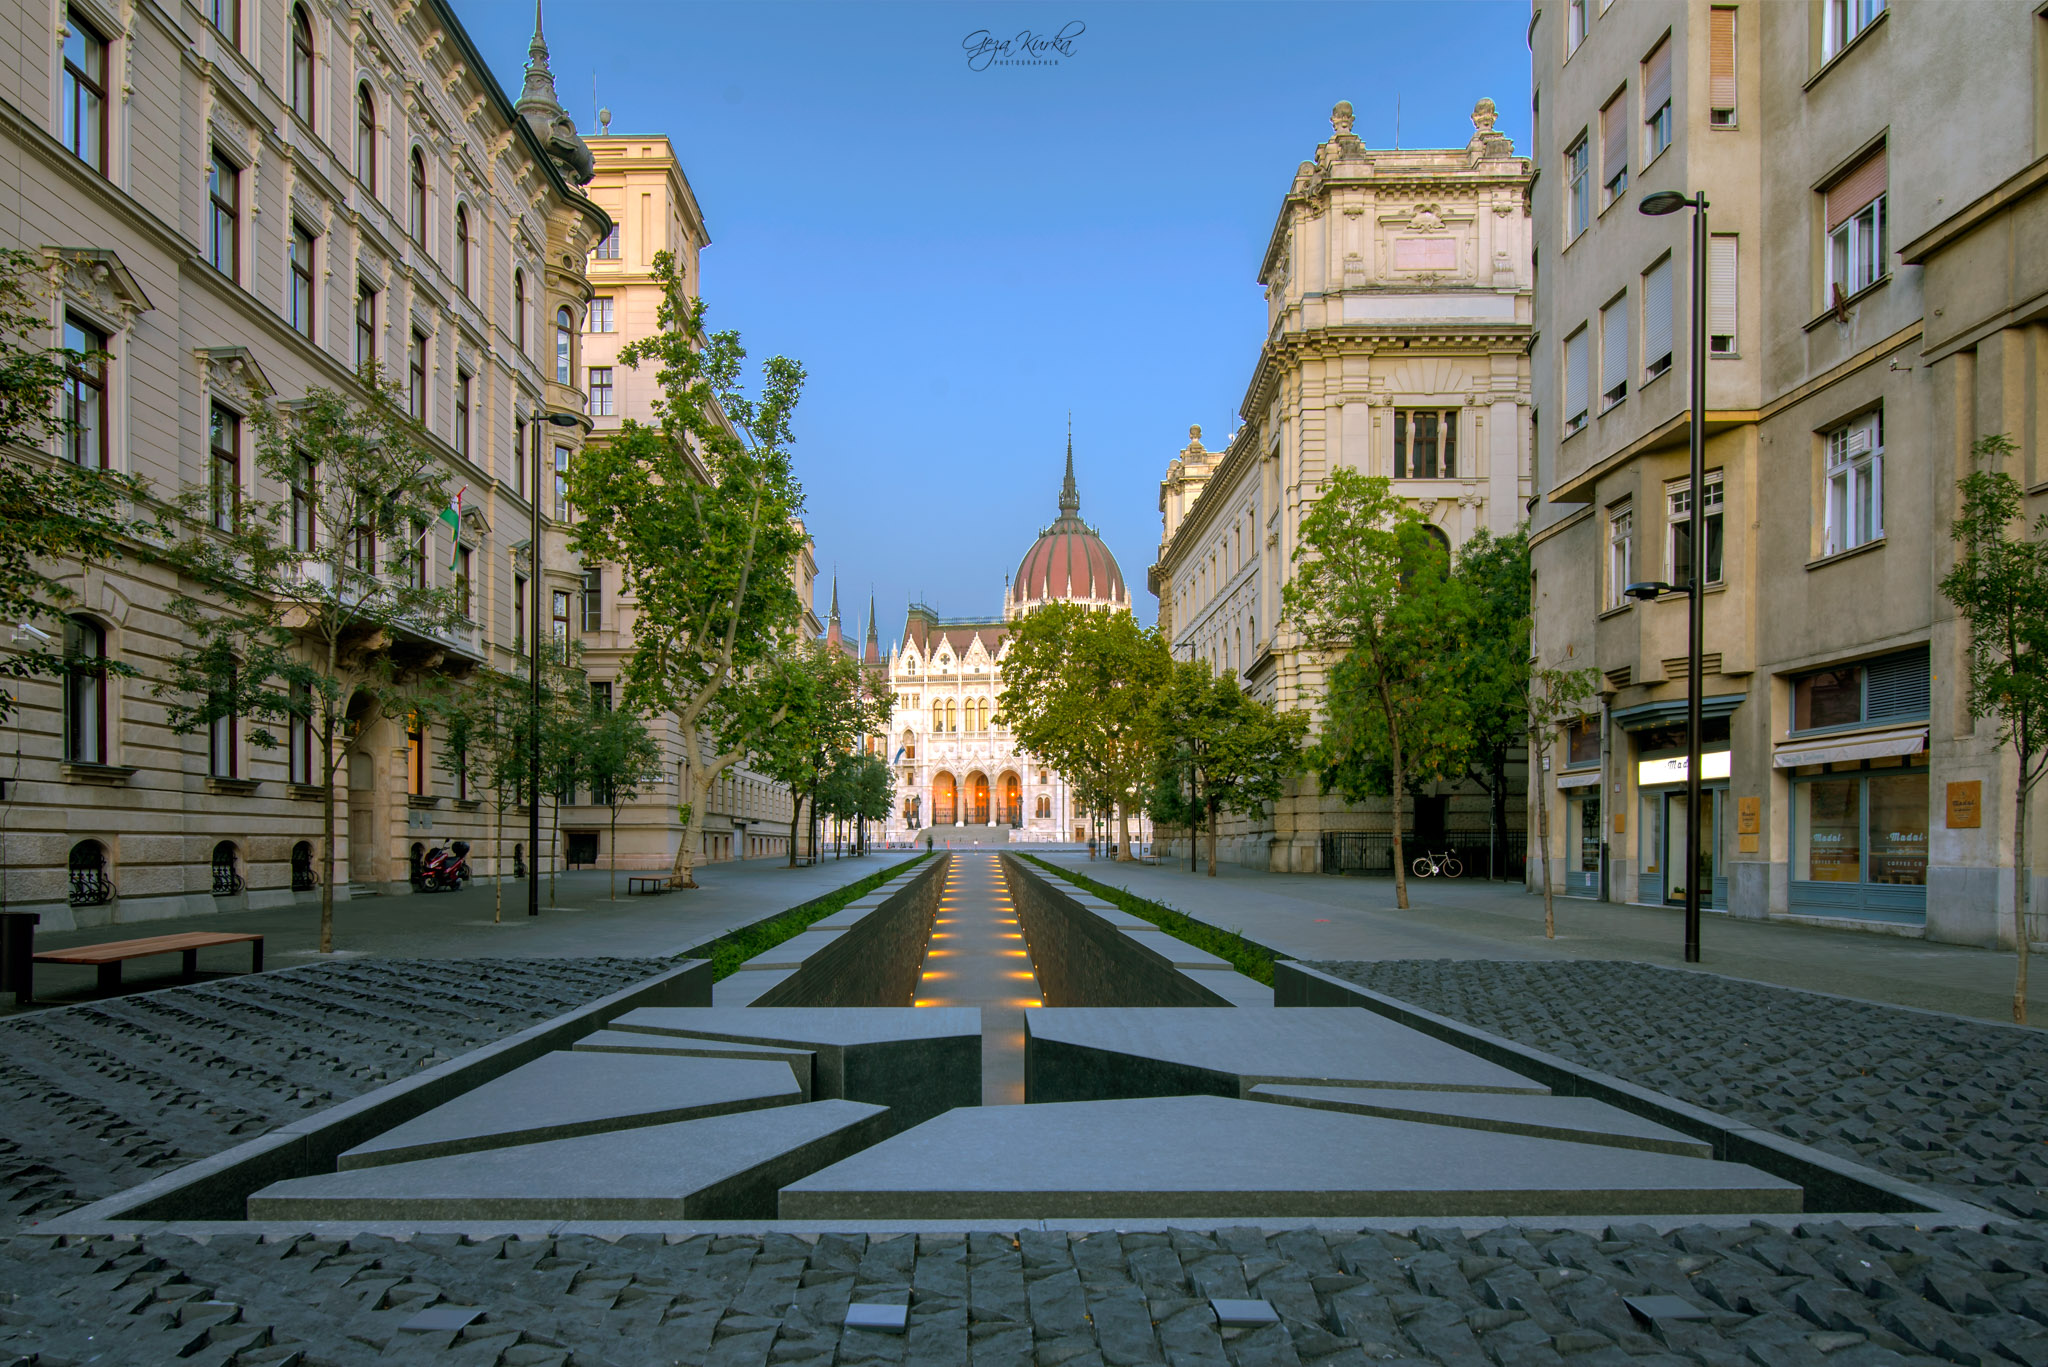 Trianon monument in Budapest., Hungary